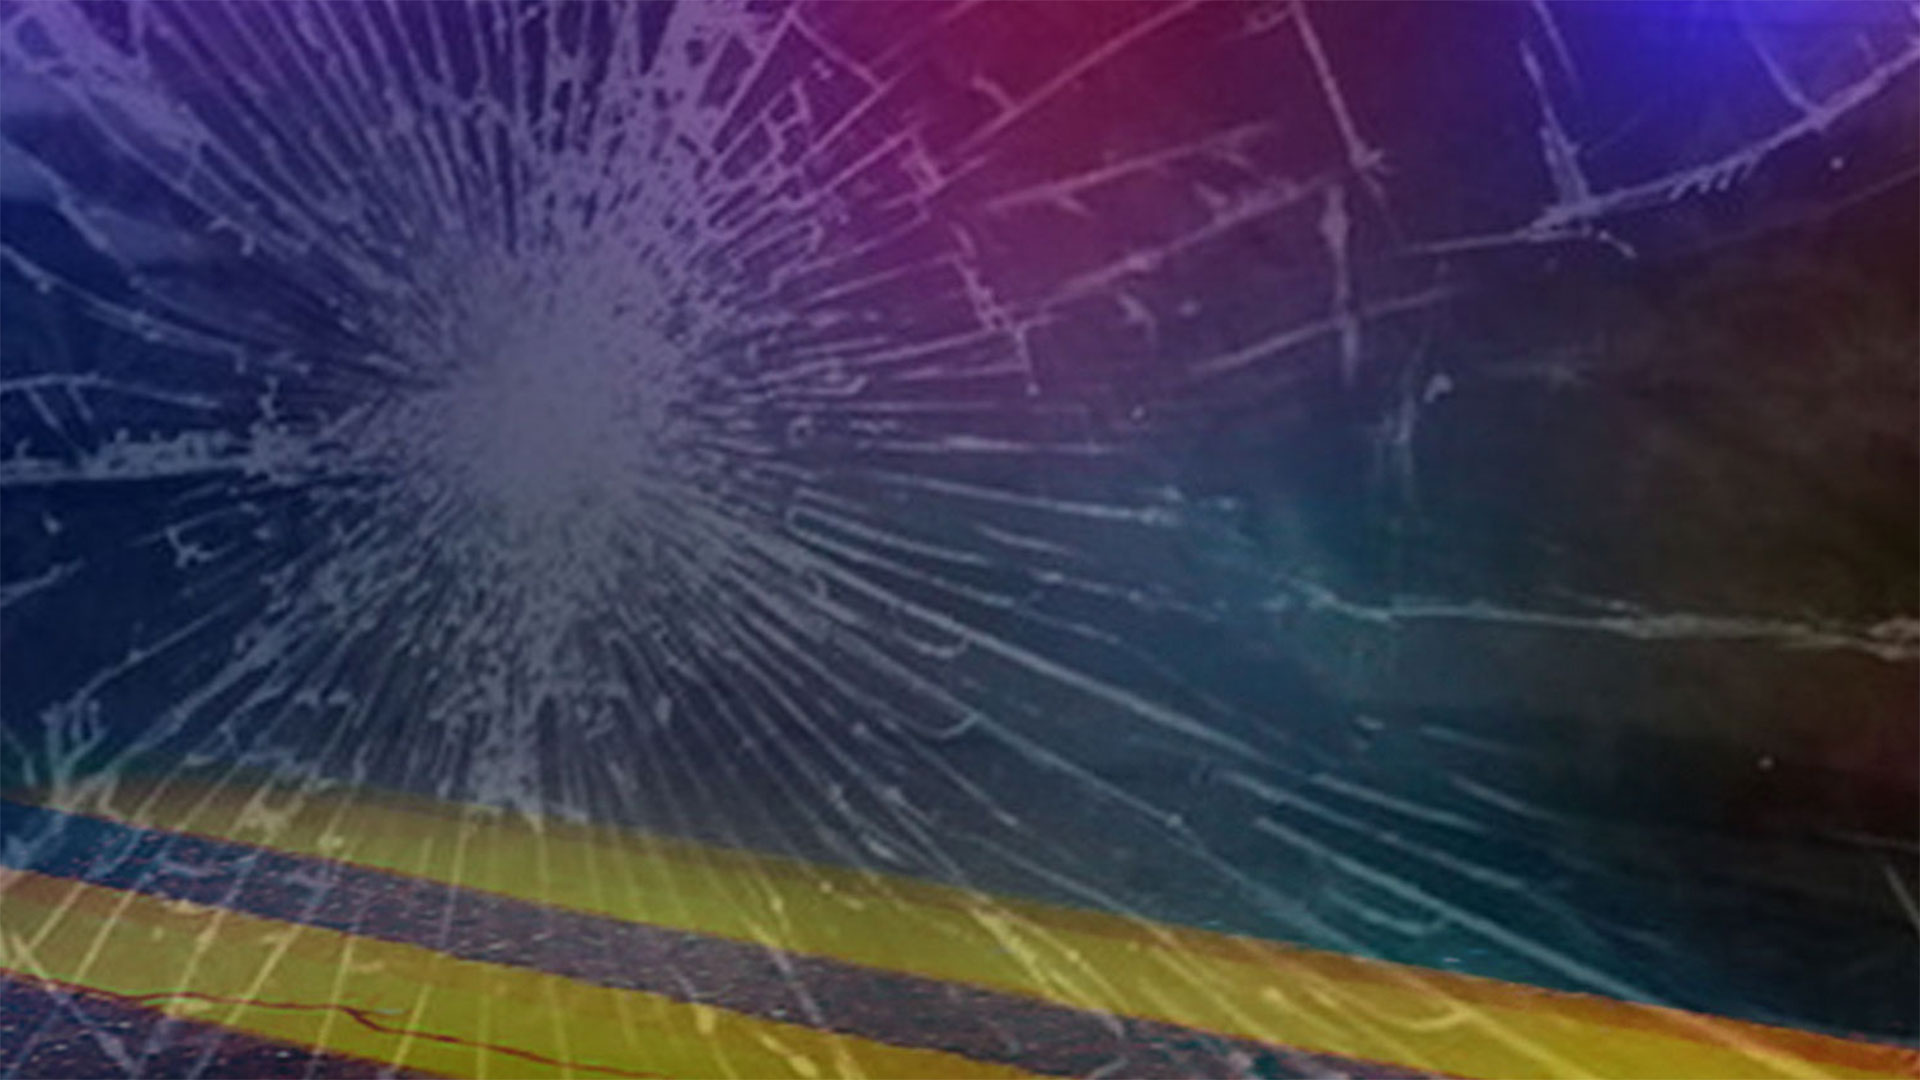 One Dead, Two Injured After Crash On Highway 18 Near Oelrichs